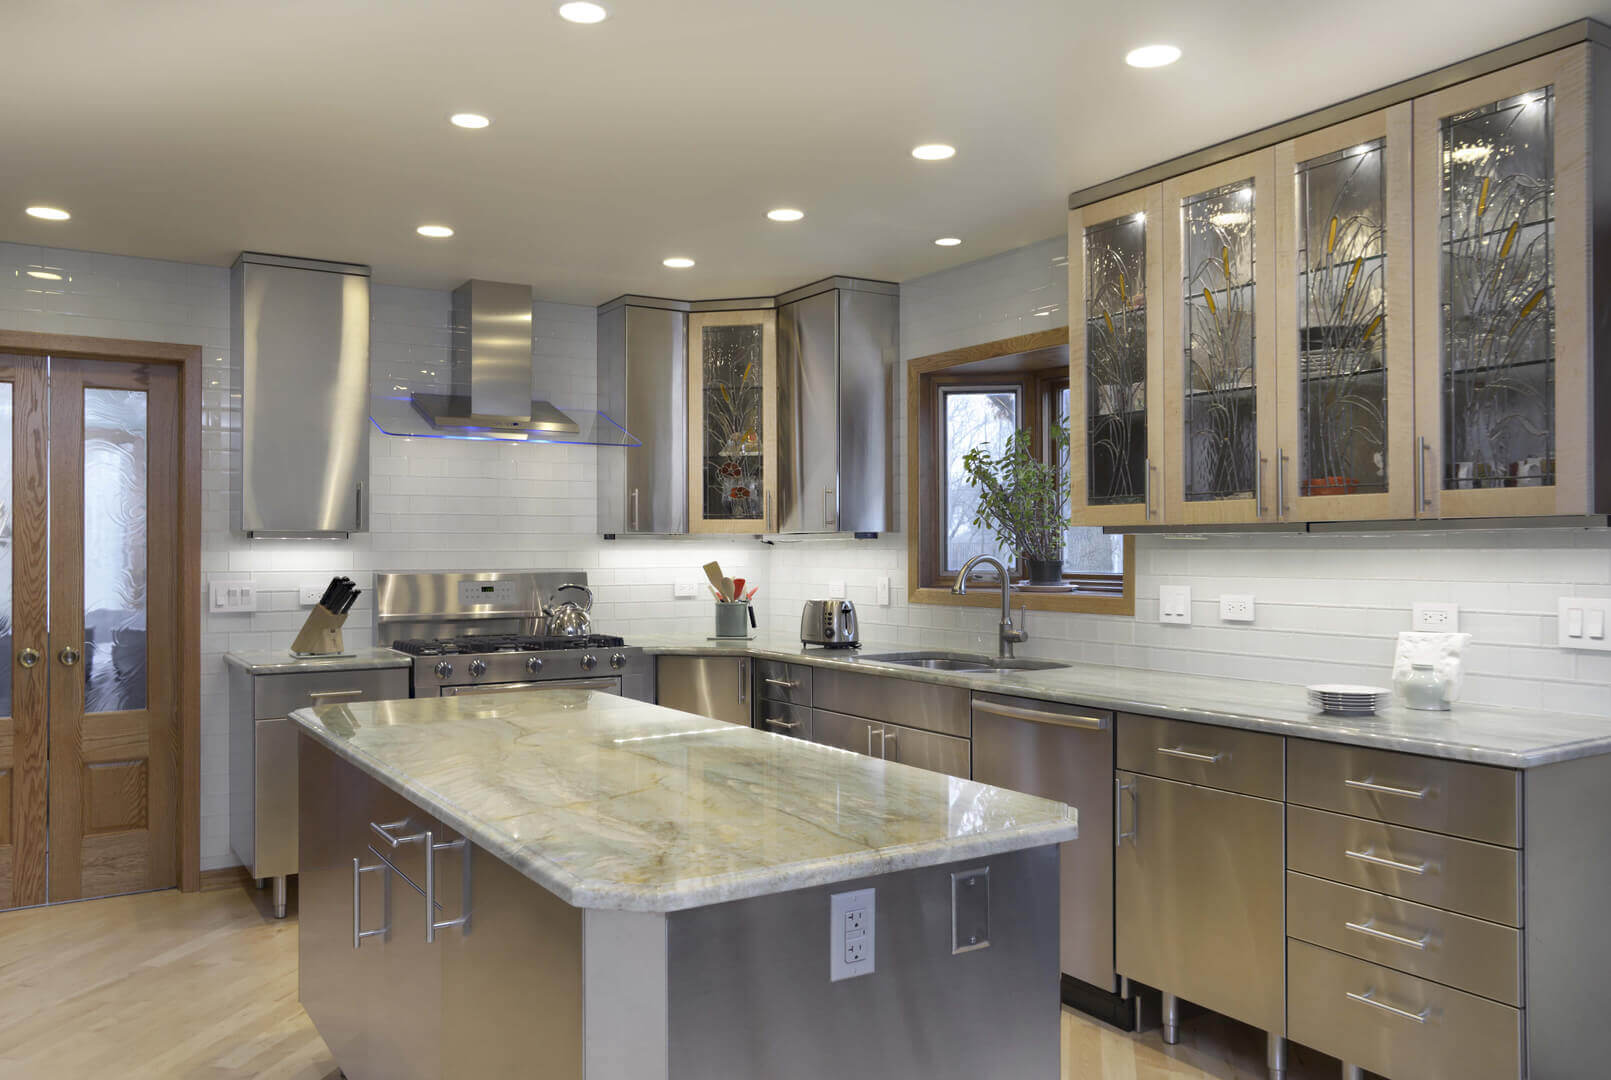 Nowadays, stainless steel has become prominent material in most modern kitchens designs. Stainless steel sinks, cabinets and appliances are often the desired fixtures of modern kitchens and they really blend well with this kitchen look